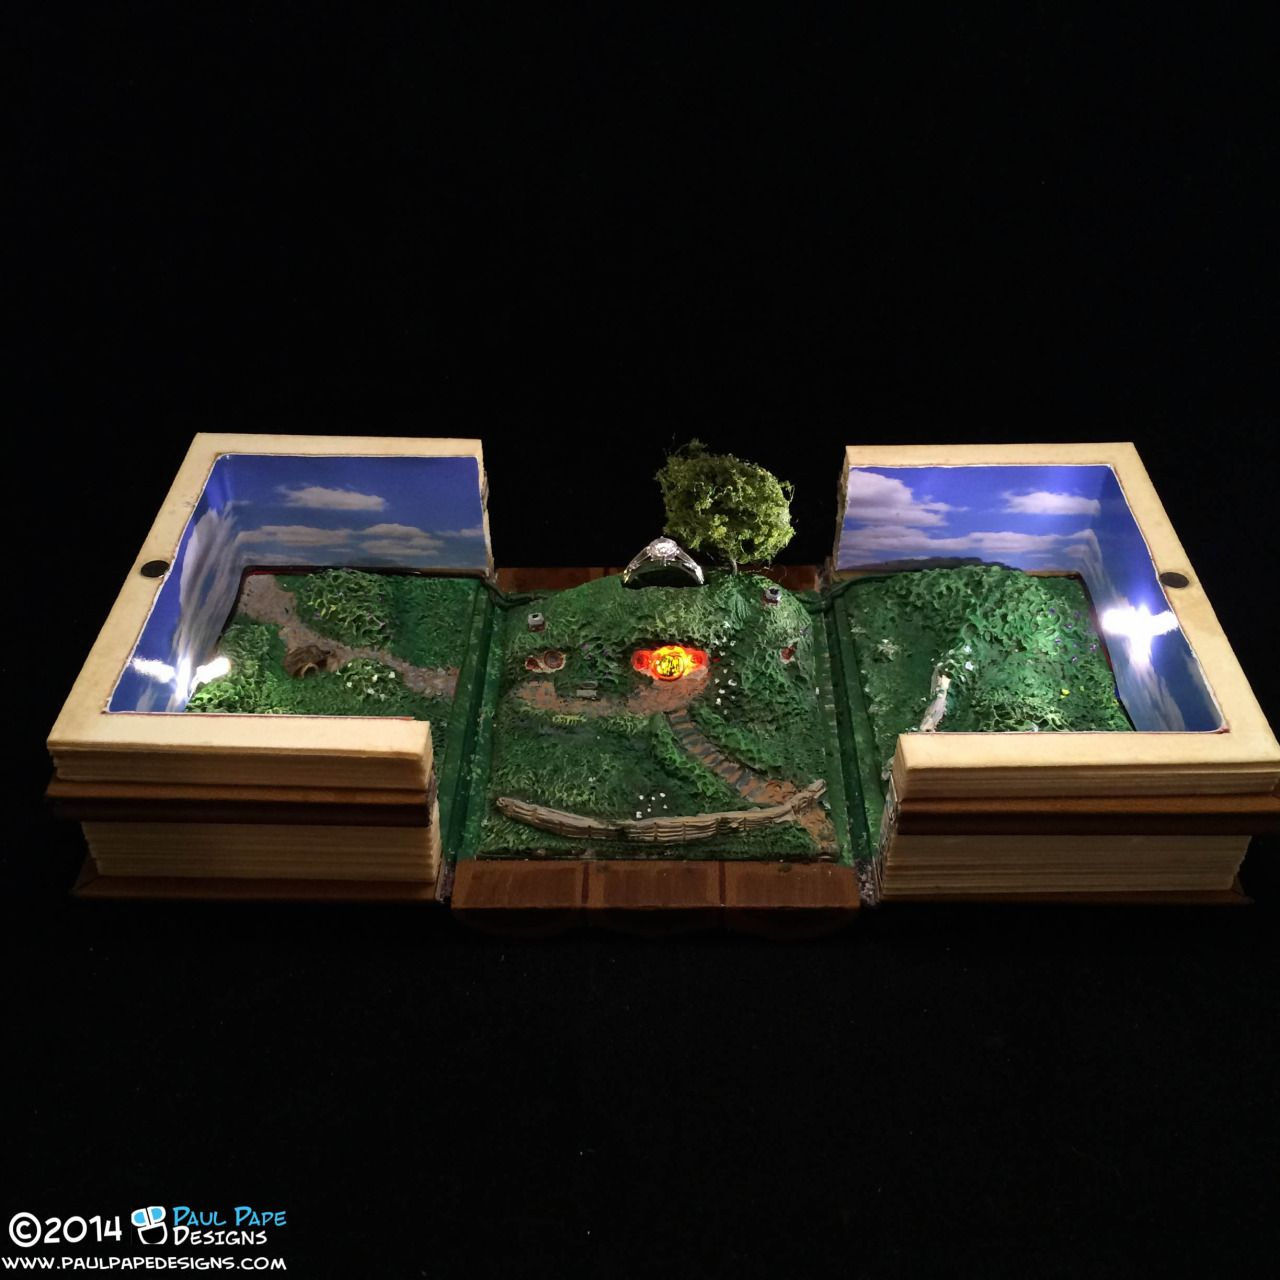 Lord of the Rings Bad End Custom Engagement Ring Box by Paul Pape Designs. This is a ring box based on the J.R.R. Tolkien series the Lord of the Rings. It is a series of books, and then when you open the books you're presented with Bag End in the...